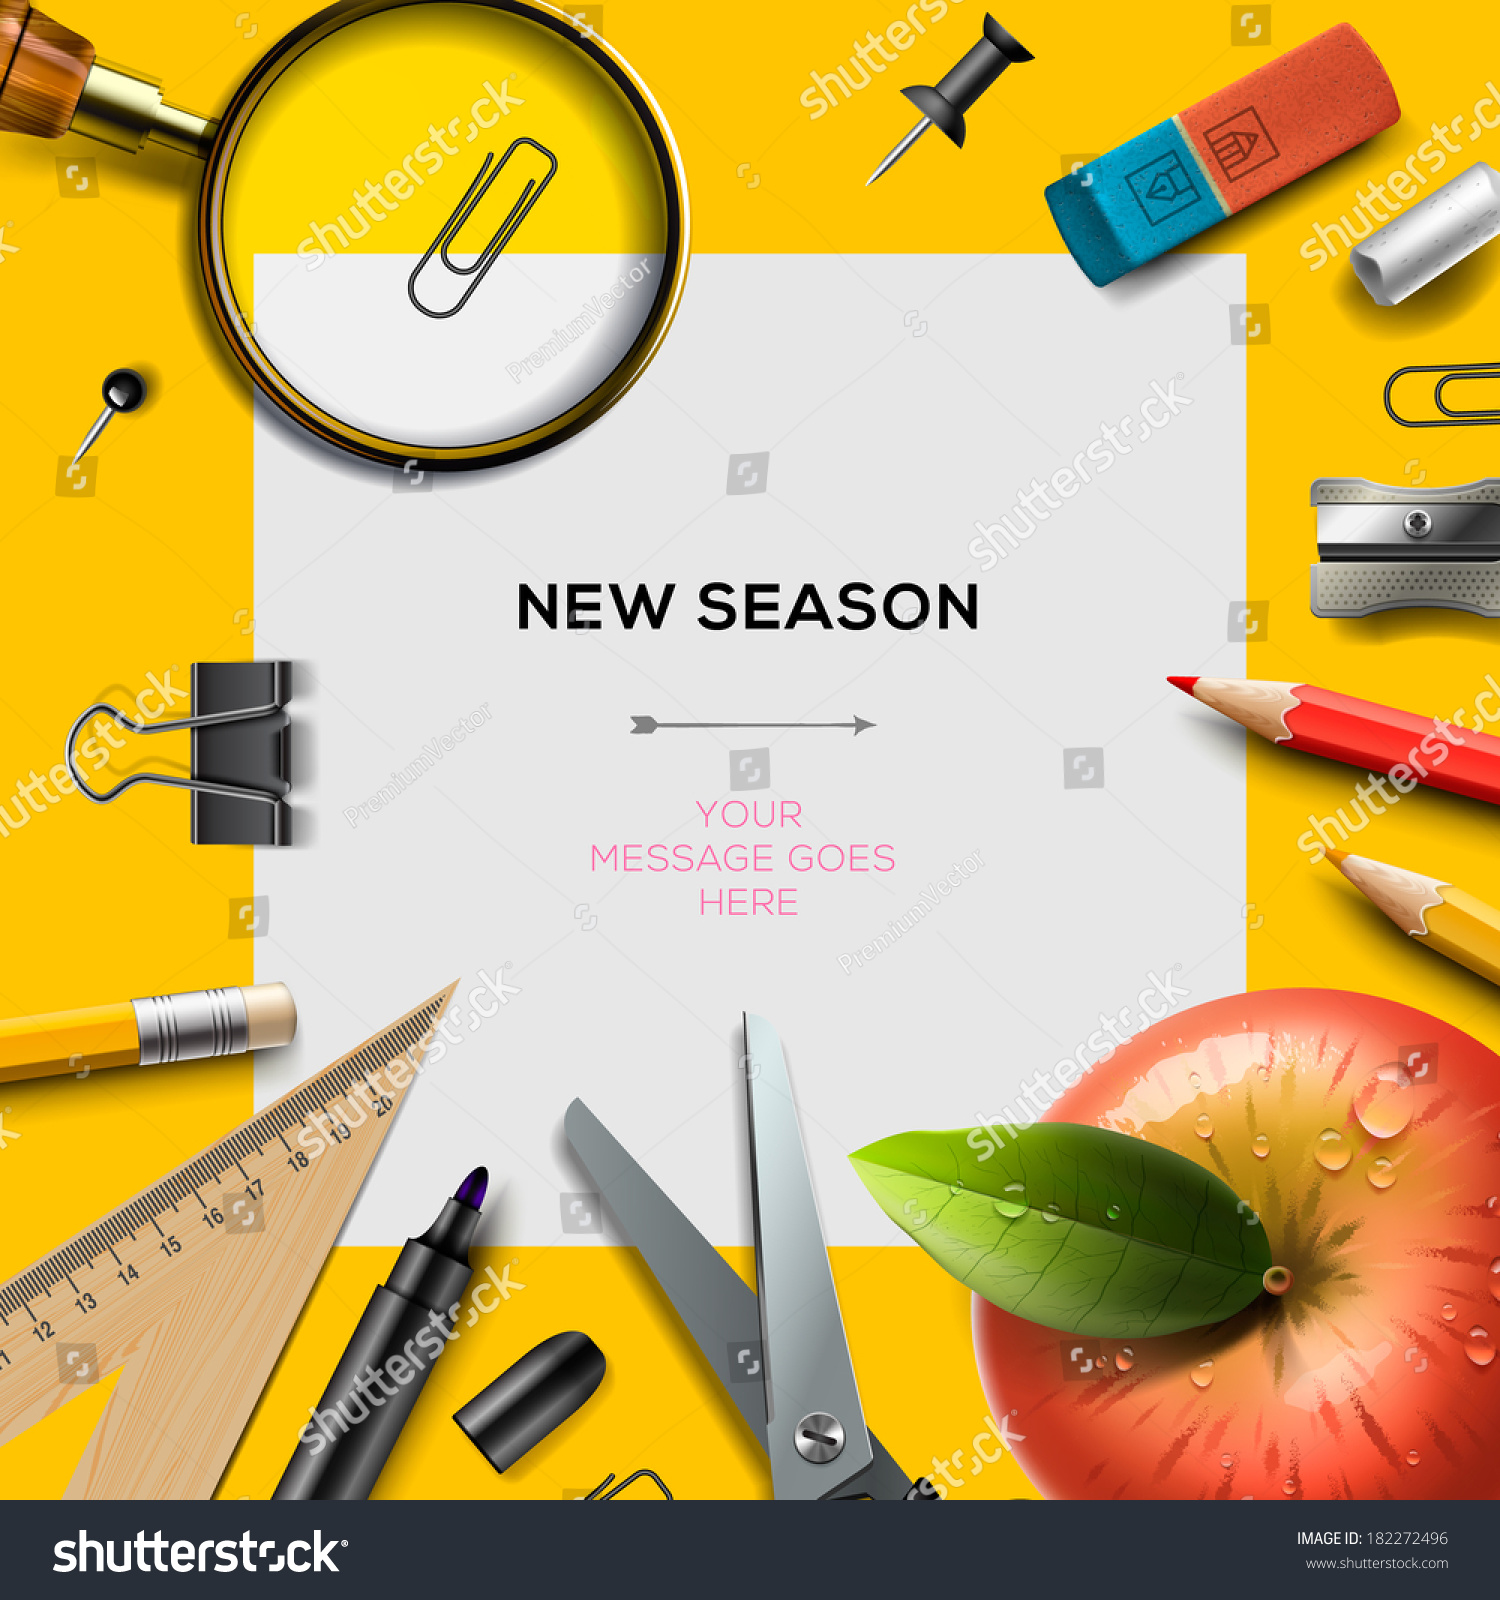 new school season invitation template office stock vector new school season invitation template office supplies back to school background vector illustration